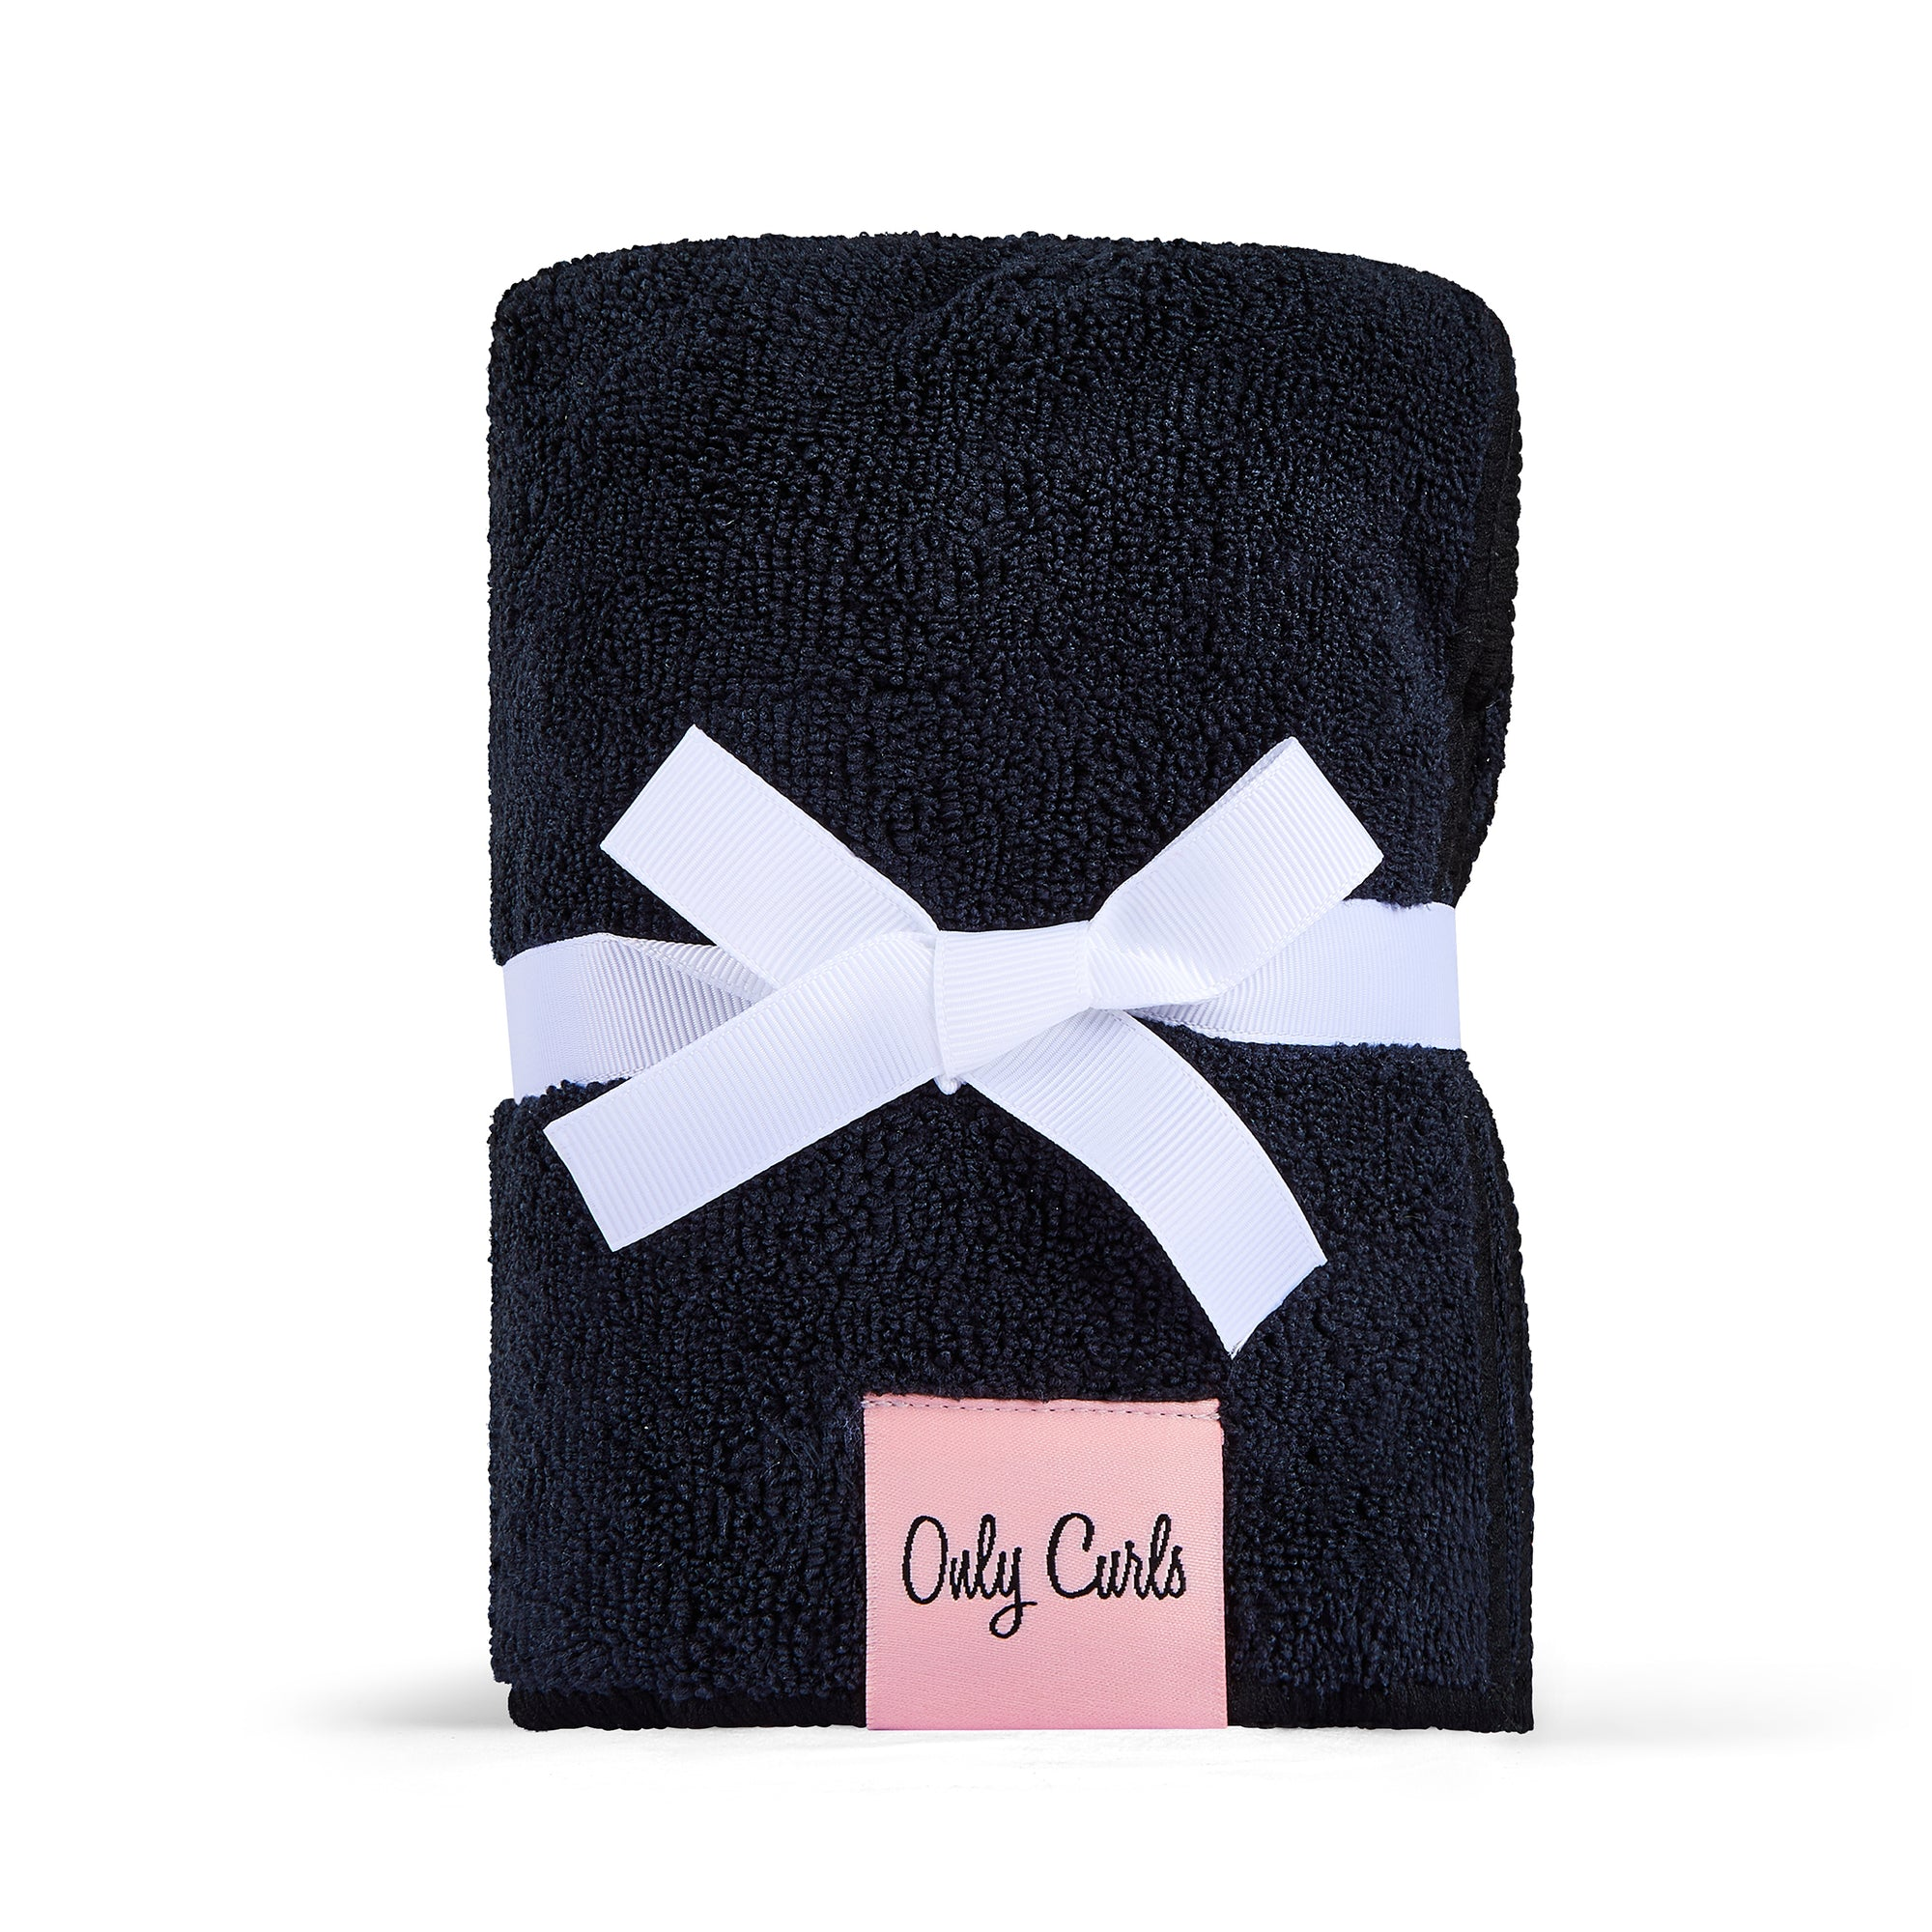 Only Curls Microfibre Hair Towel - Black - Only Curls